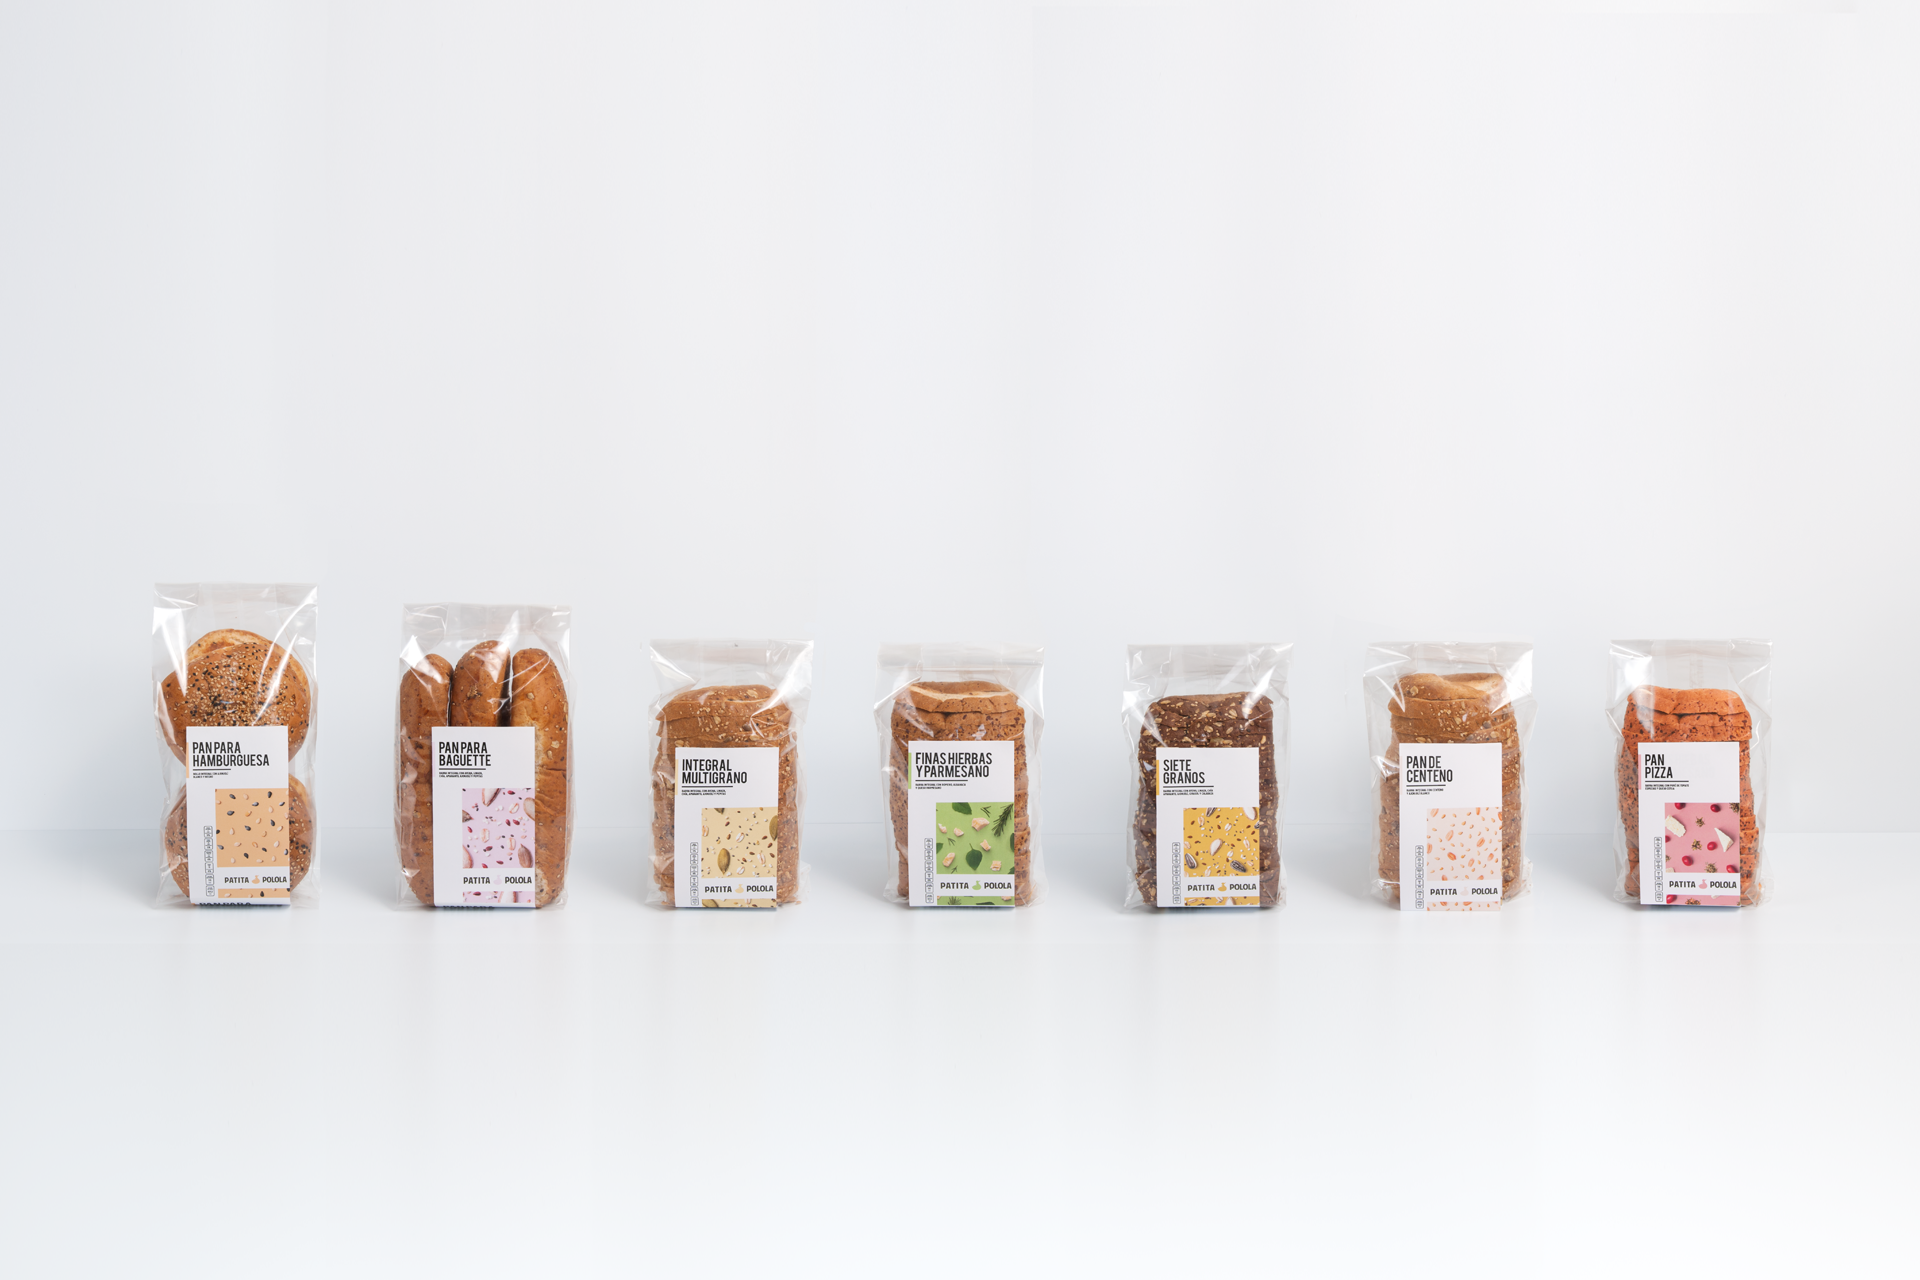 We were asked to redesign their old packaging, they needed a cleaner look and a system that helped identify their variety of breads in an easier way.